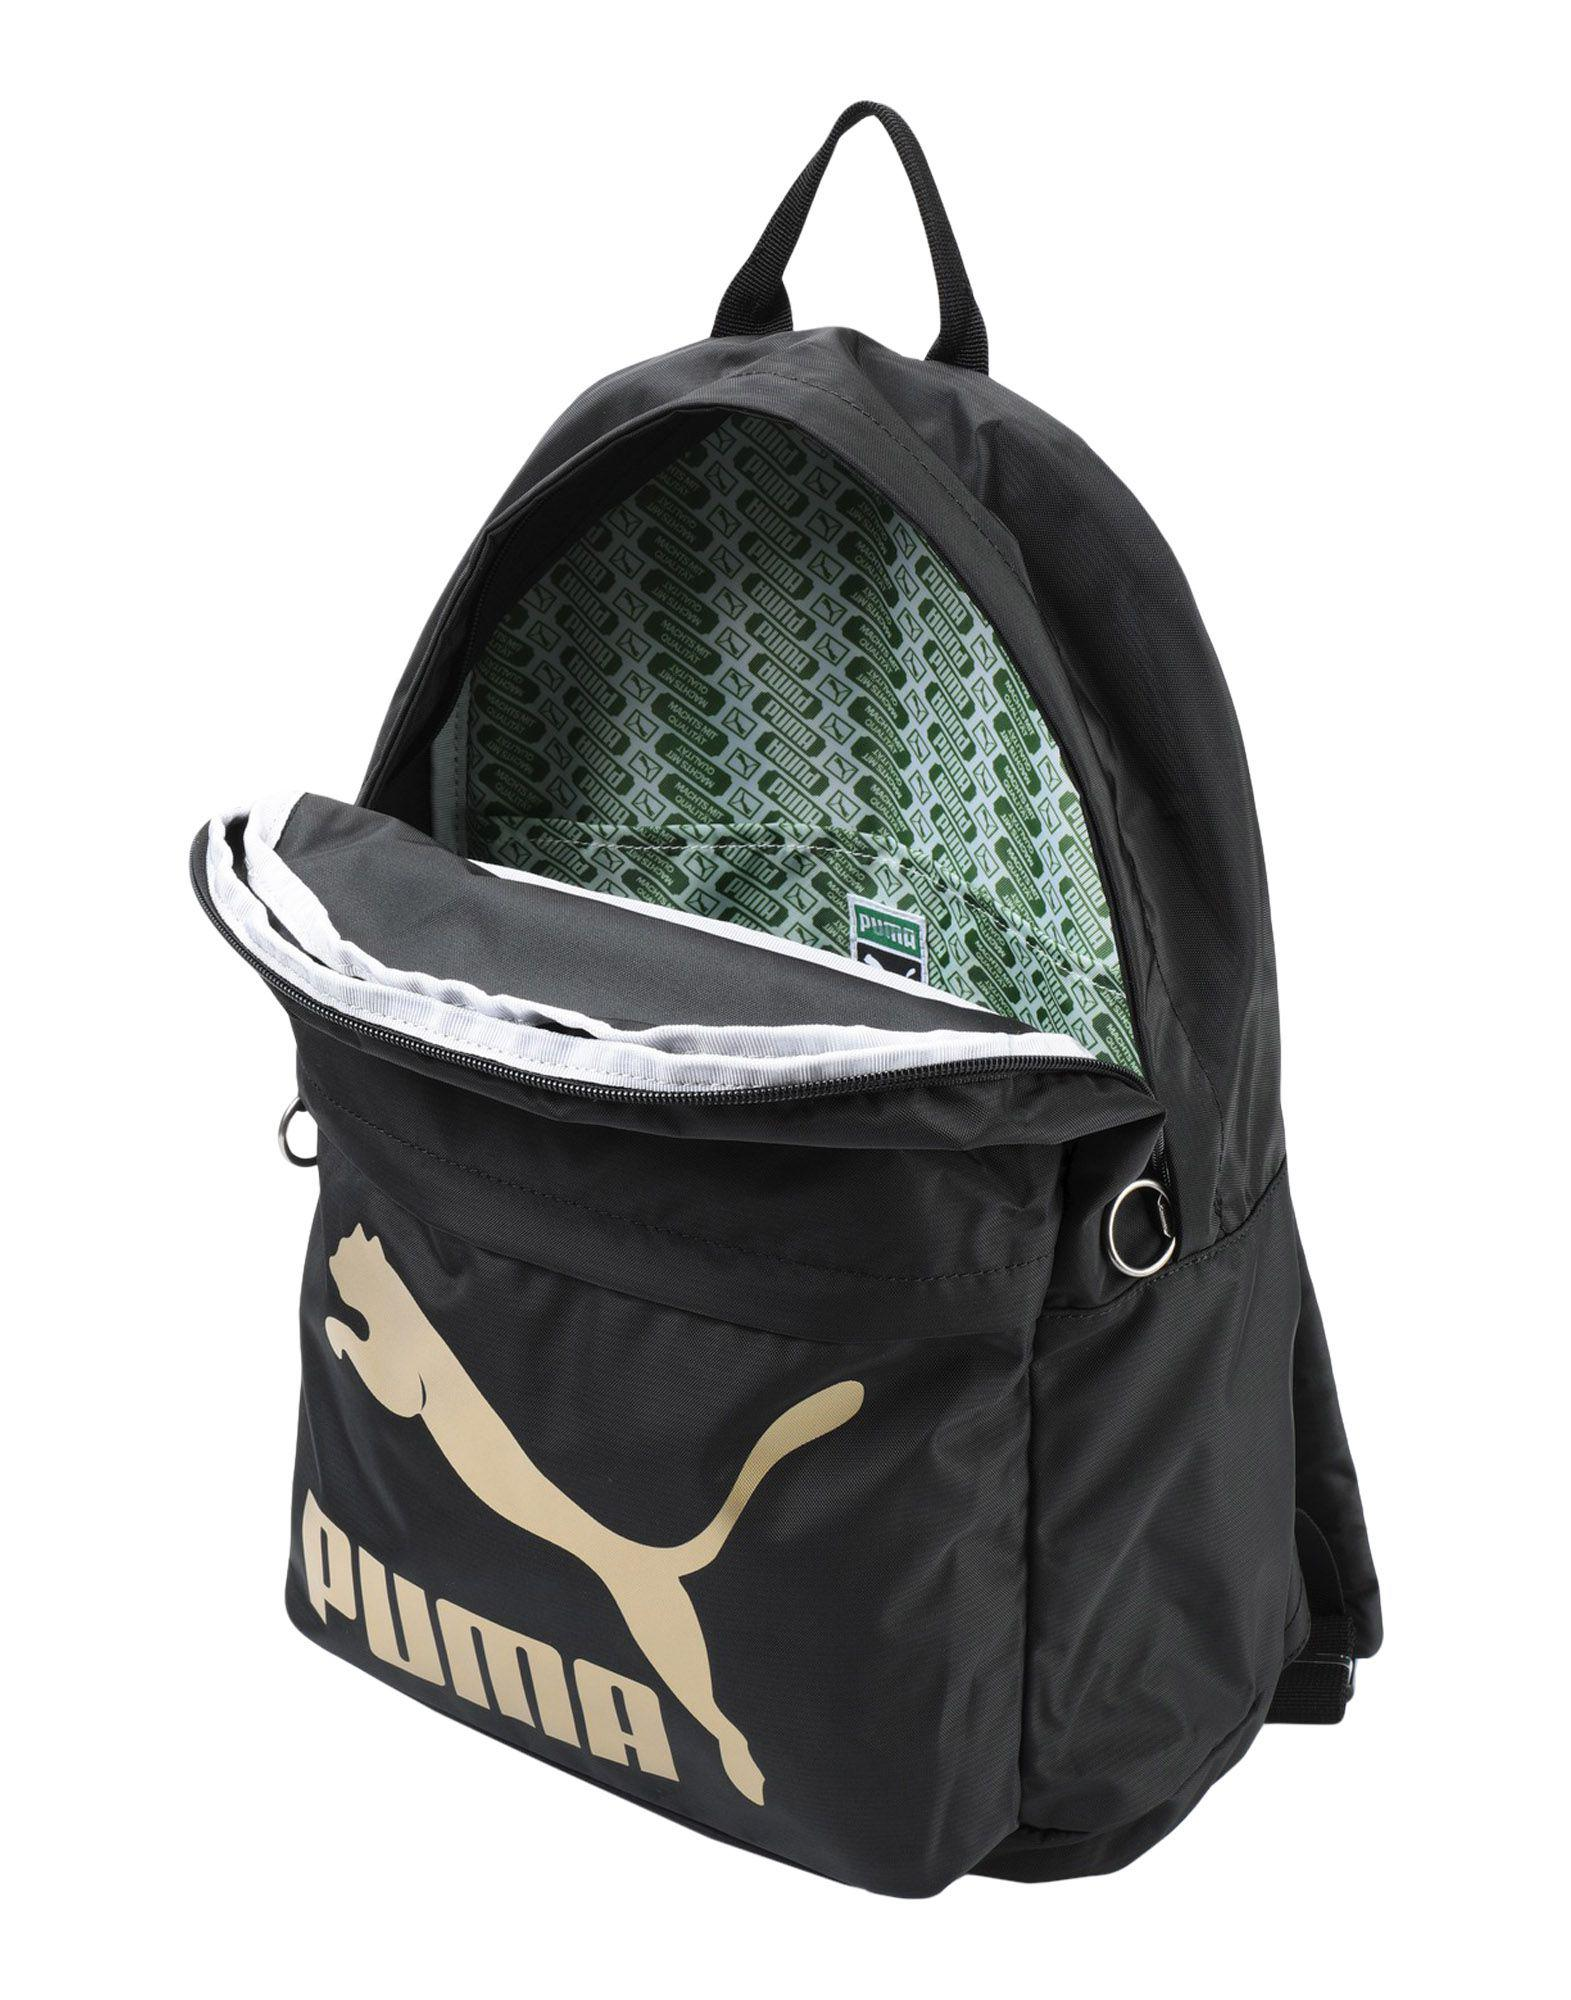 26cc5f1d26 PUMA Backpacks   Bum Bags in Black - Lyst